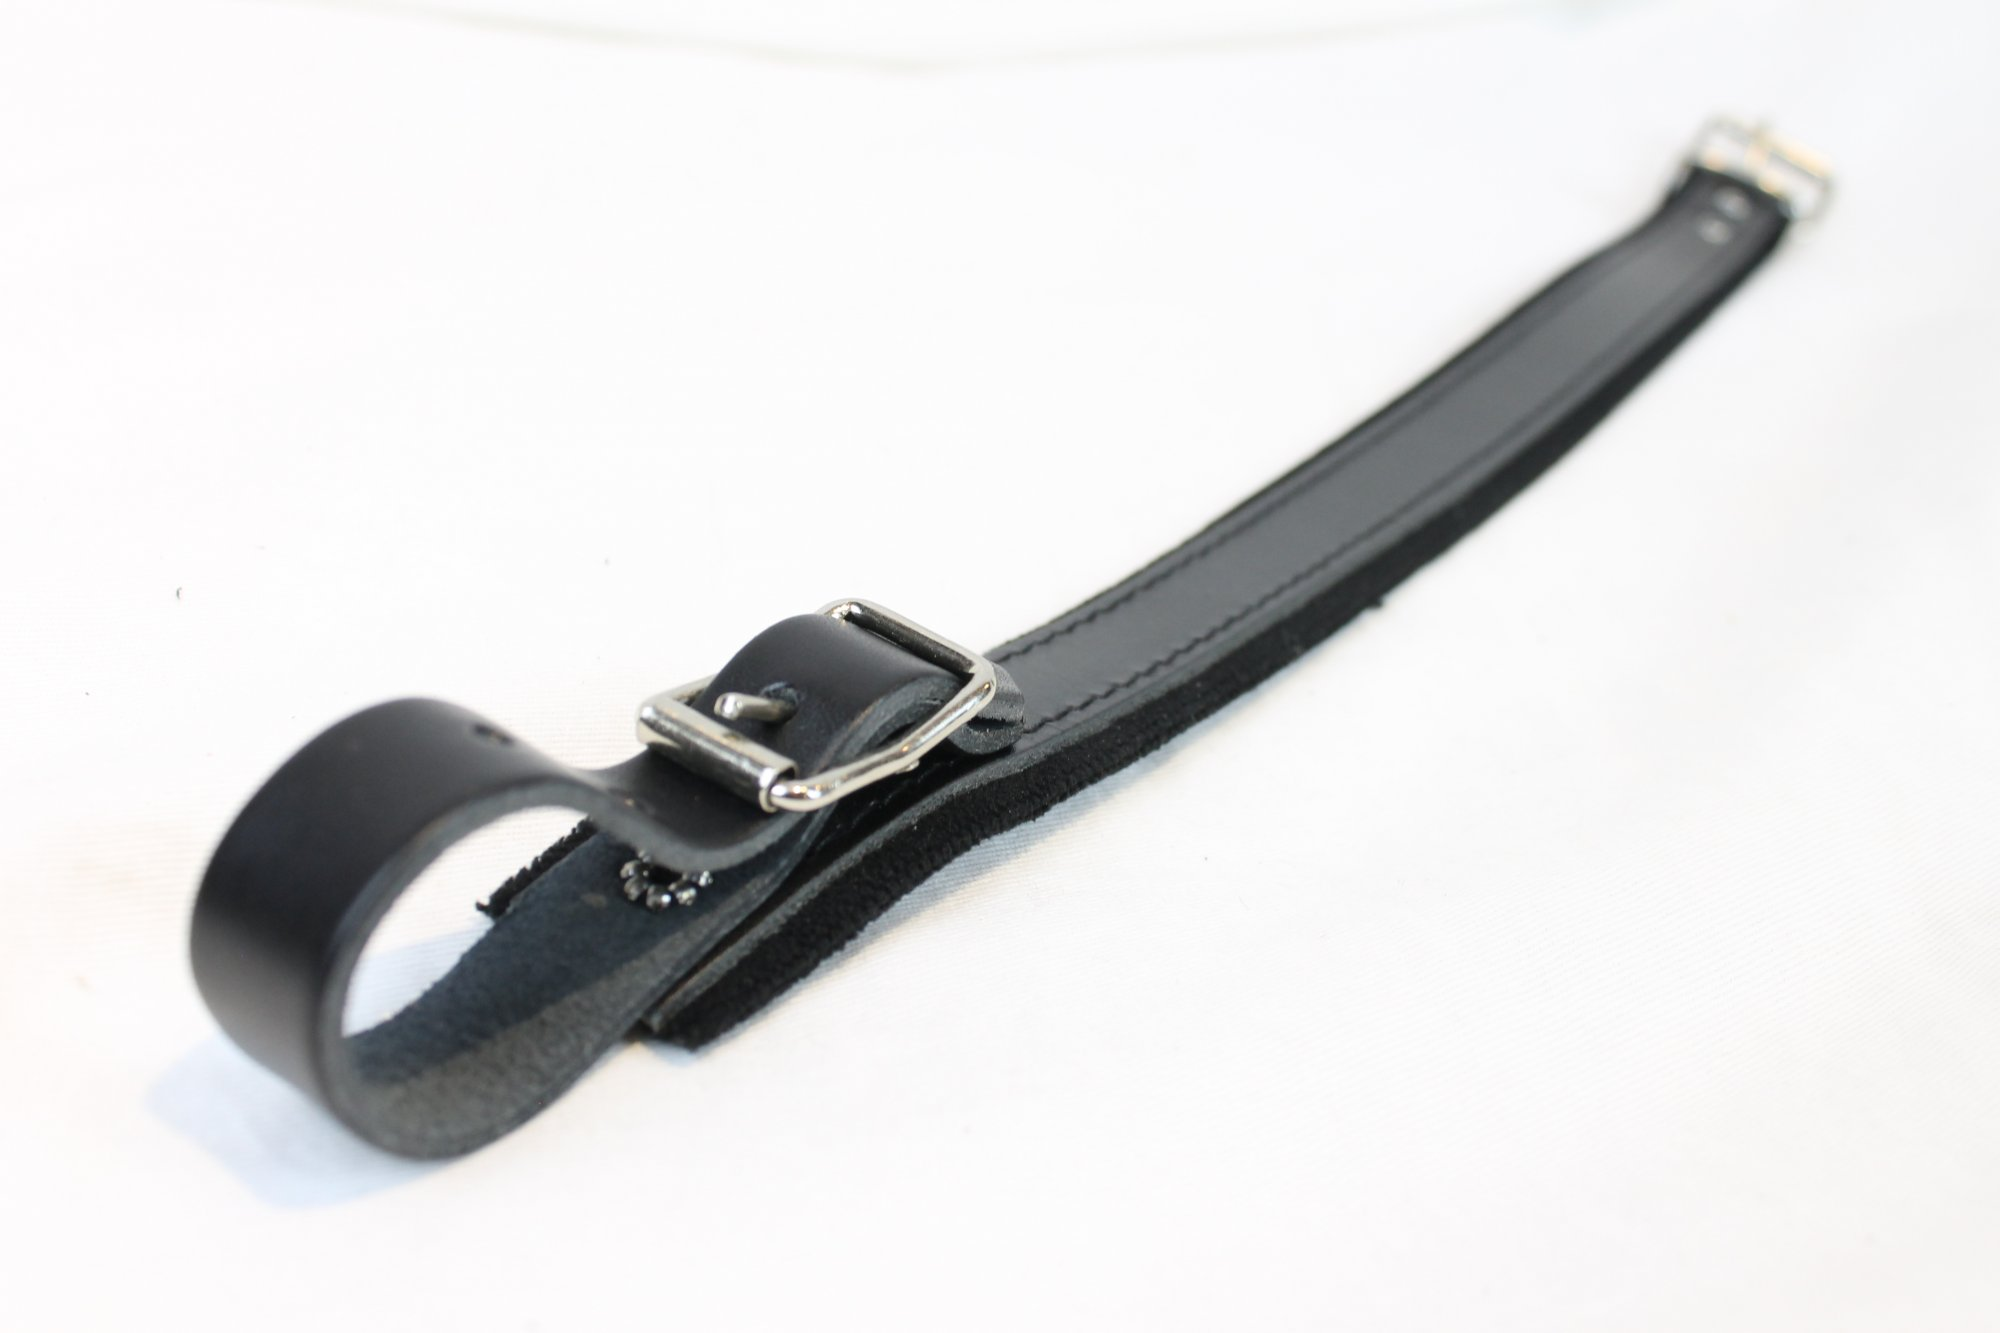 NEW Black Fuselli Velour Shoulder Strap Extender Width (3.2cm / 1.25in) Length (49cm / 19.5in)